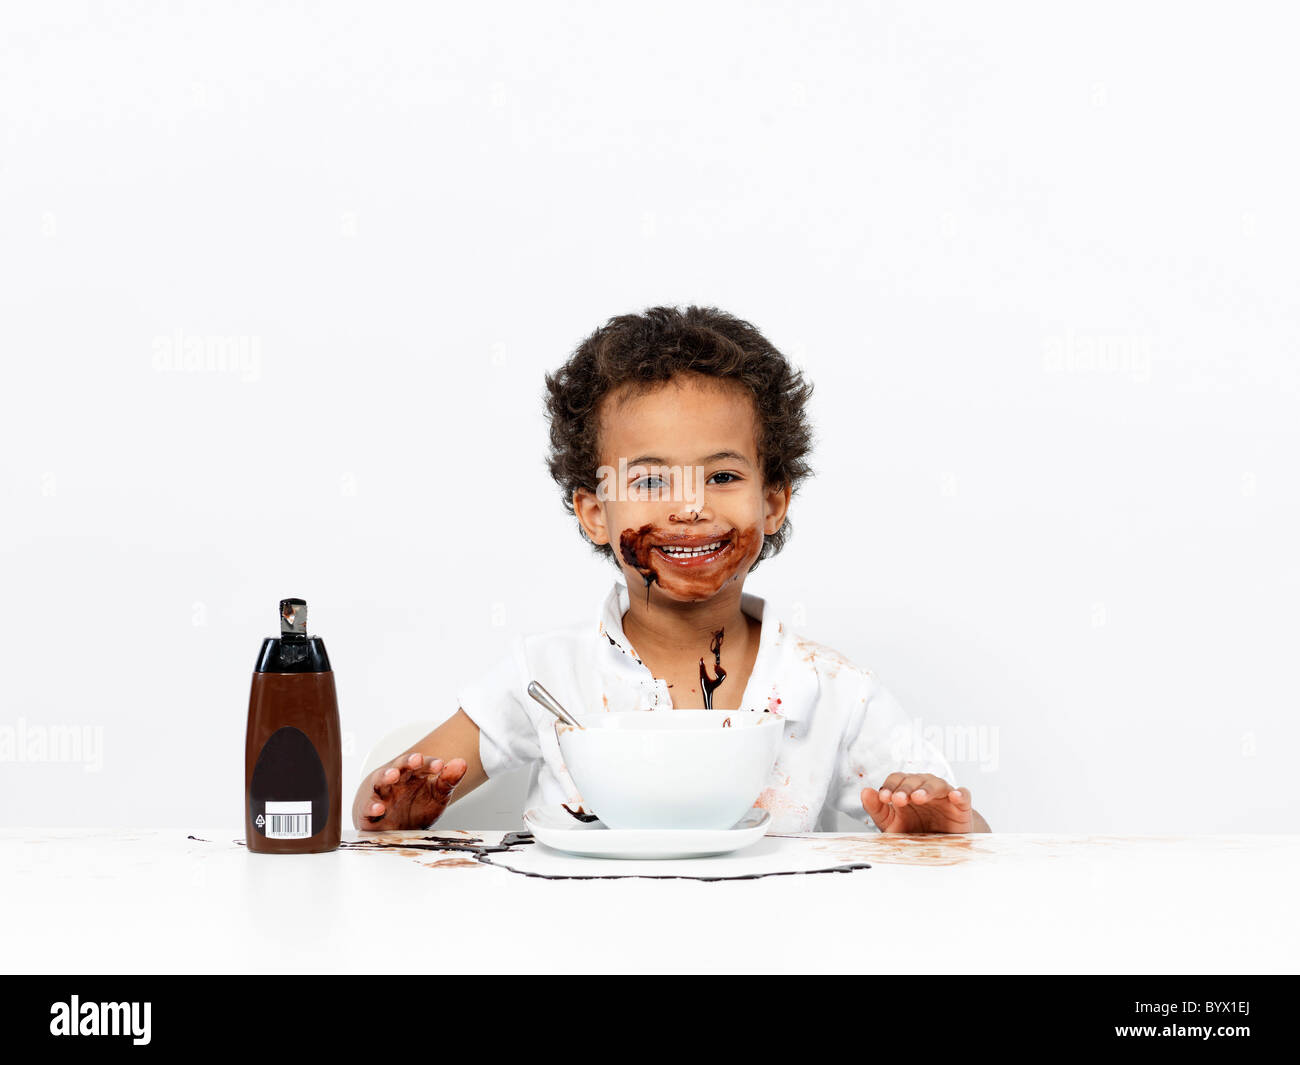 Boy covered in chocolate sauce - Stock Image